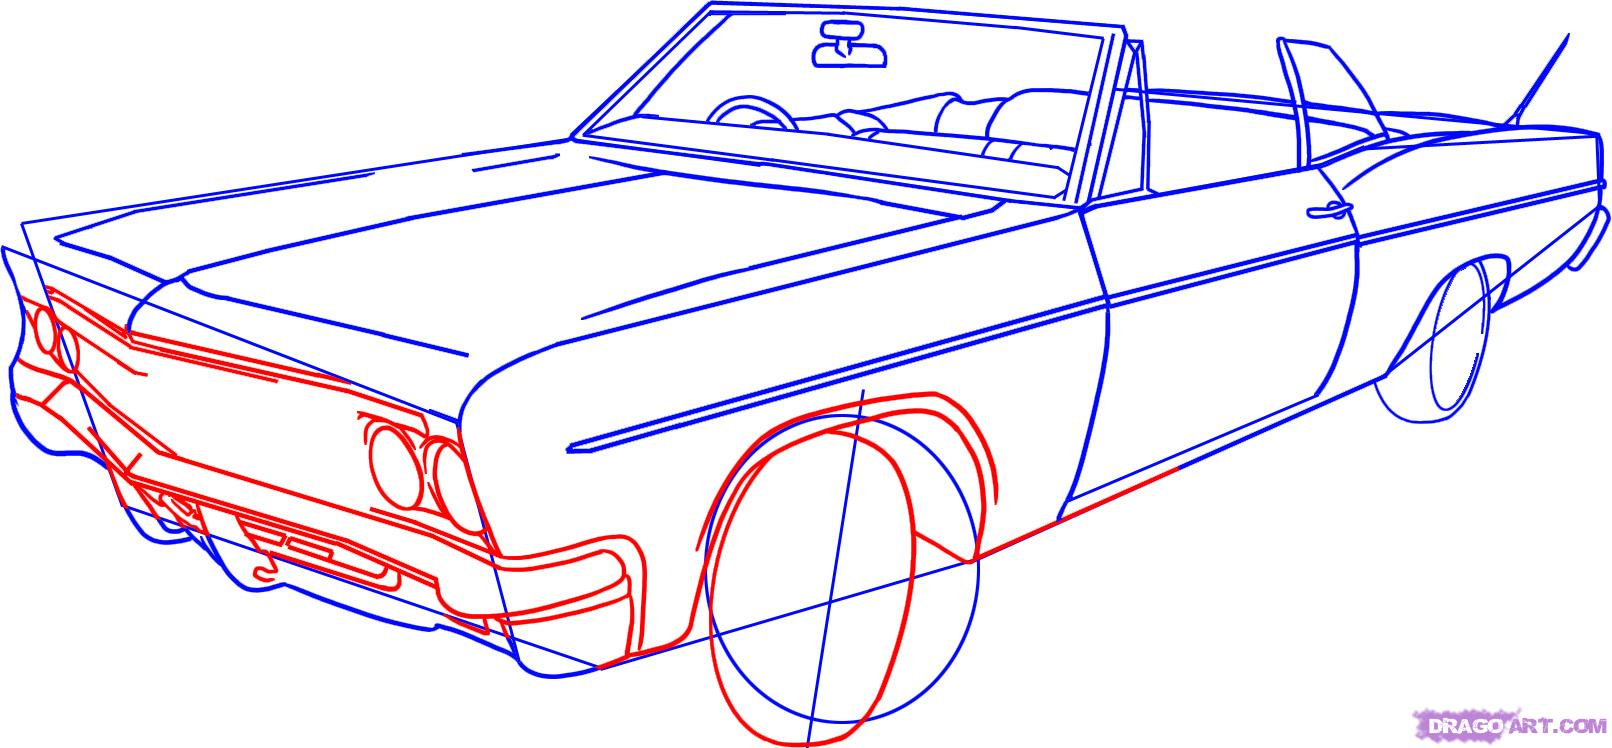 1612x748 How To Draw A Lowrider, Step By Step, Cars, Draw Cars Online